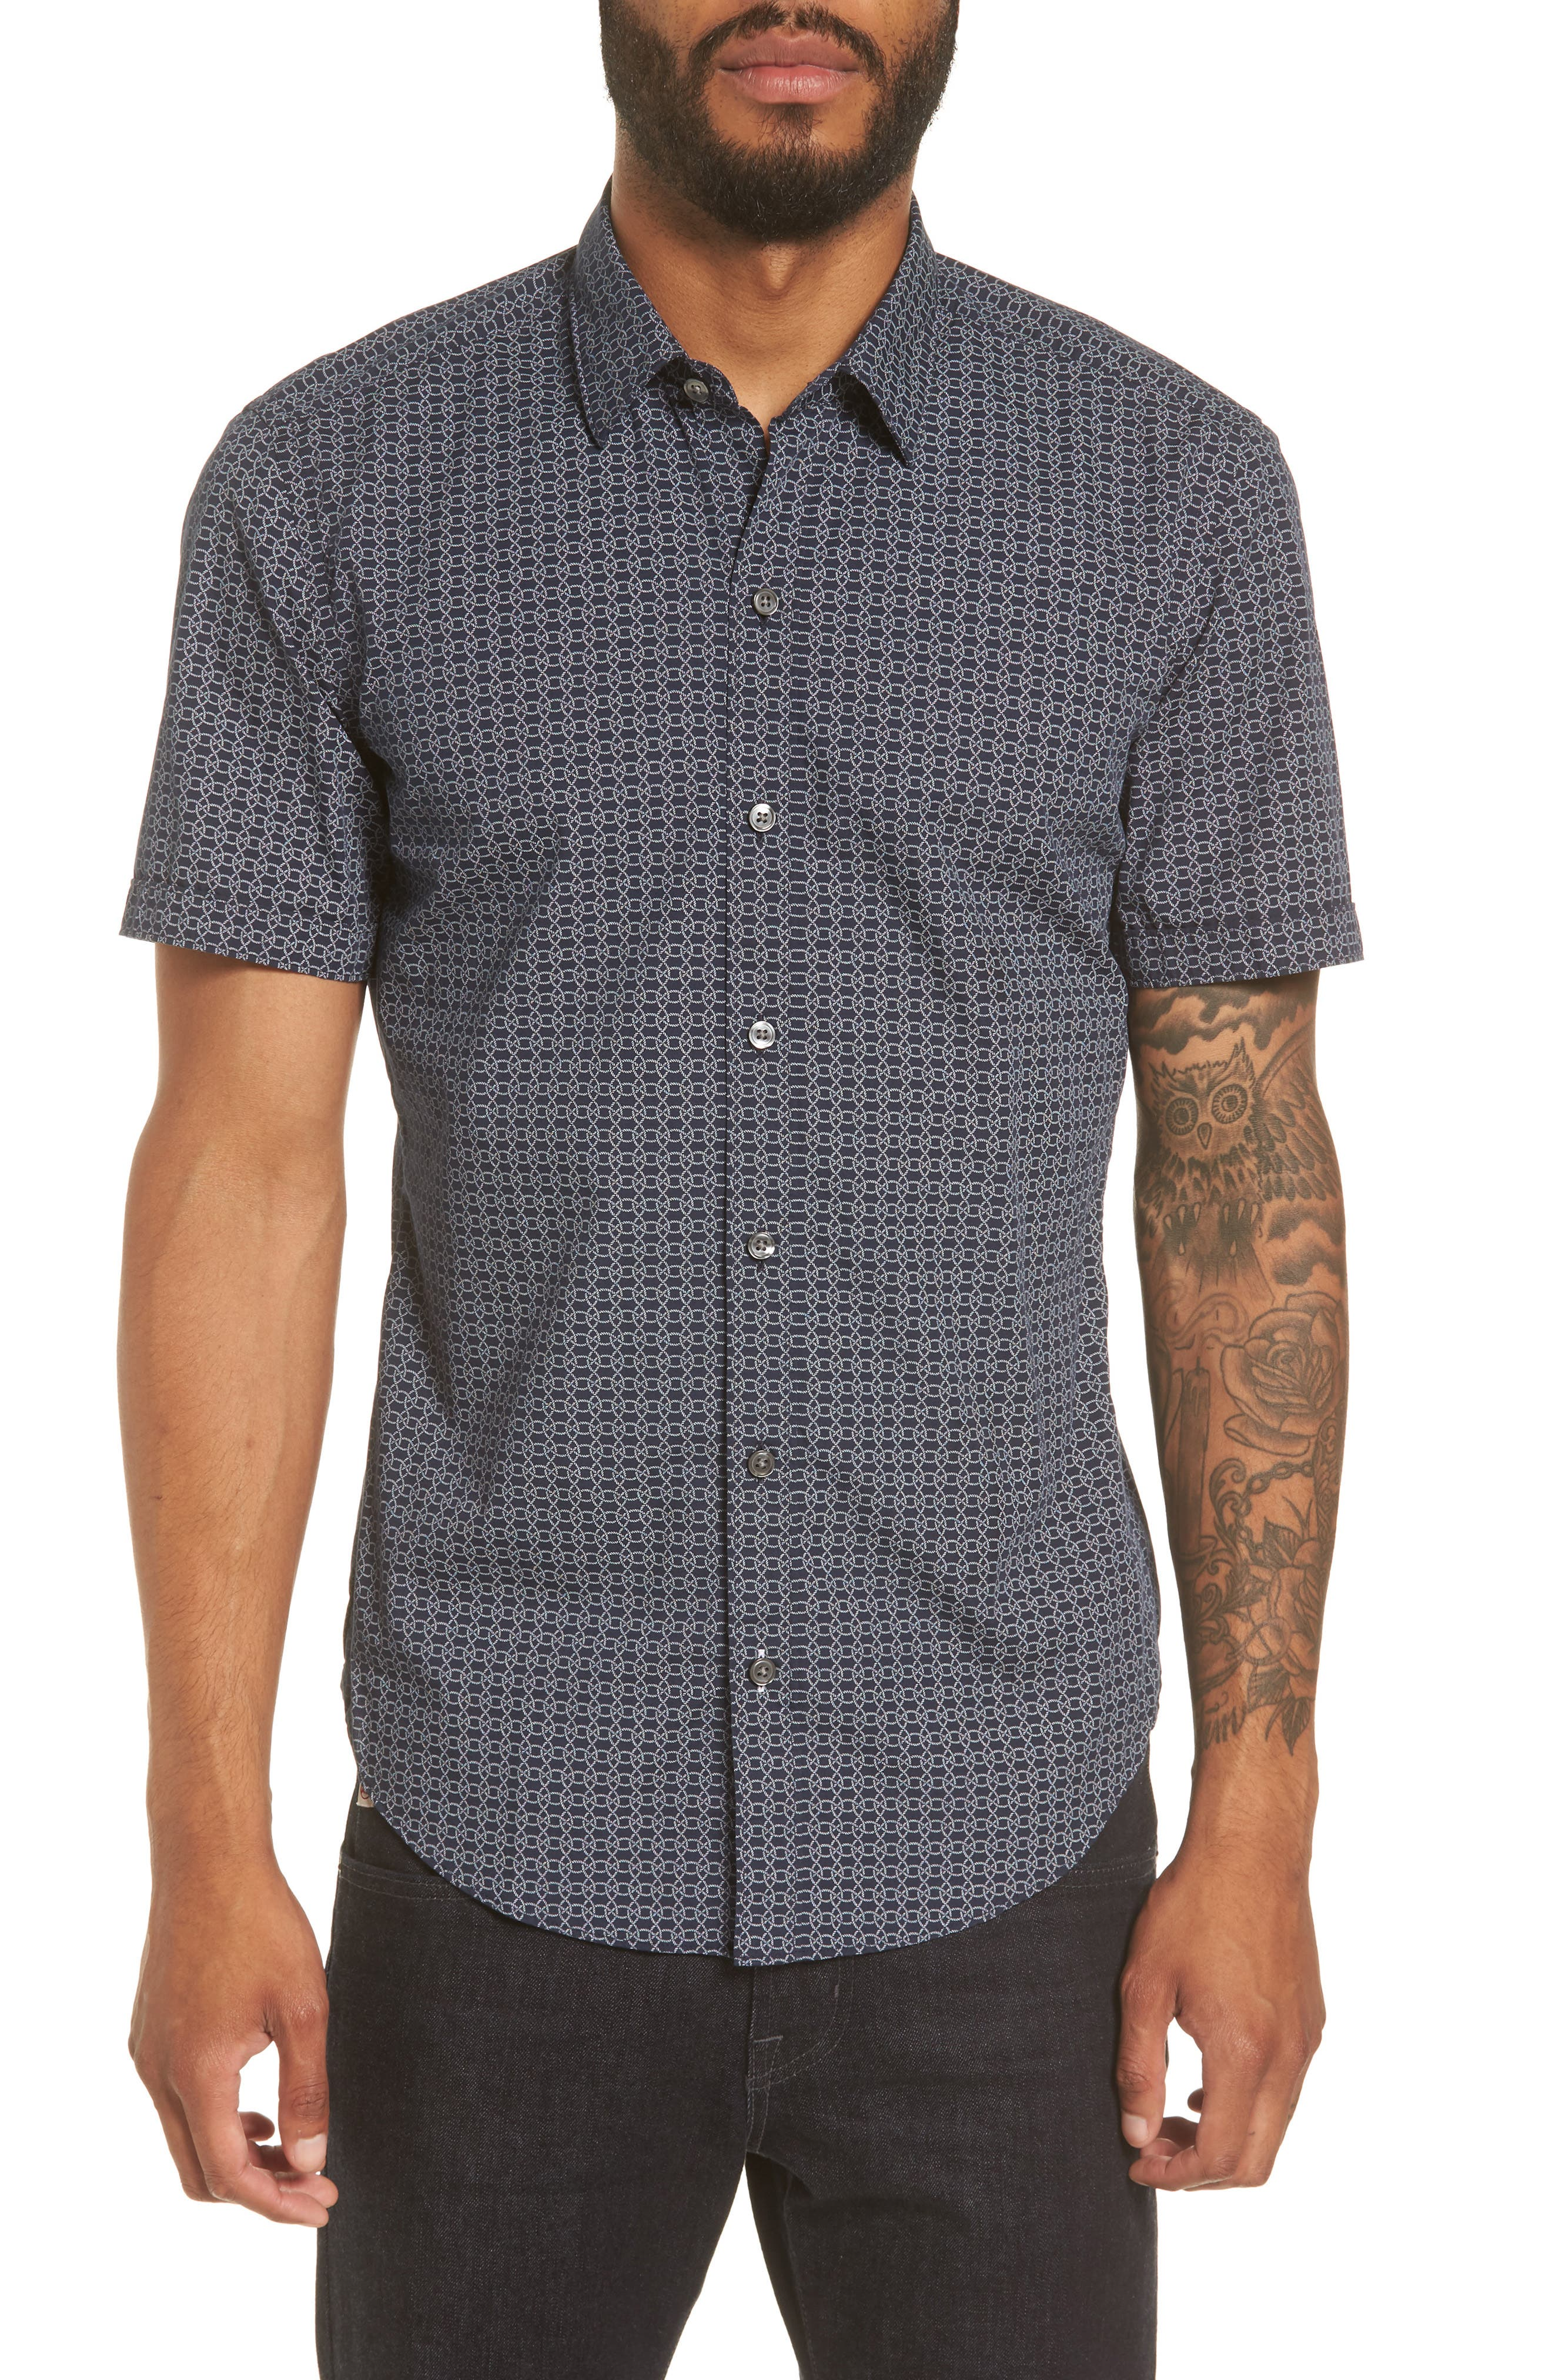 Robb Sharp Fit Knot Print Sport Shirt,                         Main,                         color, Navy